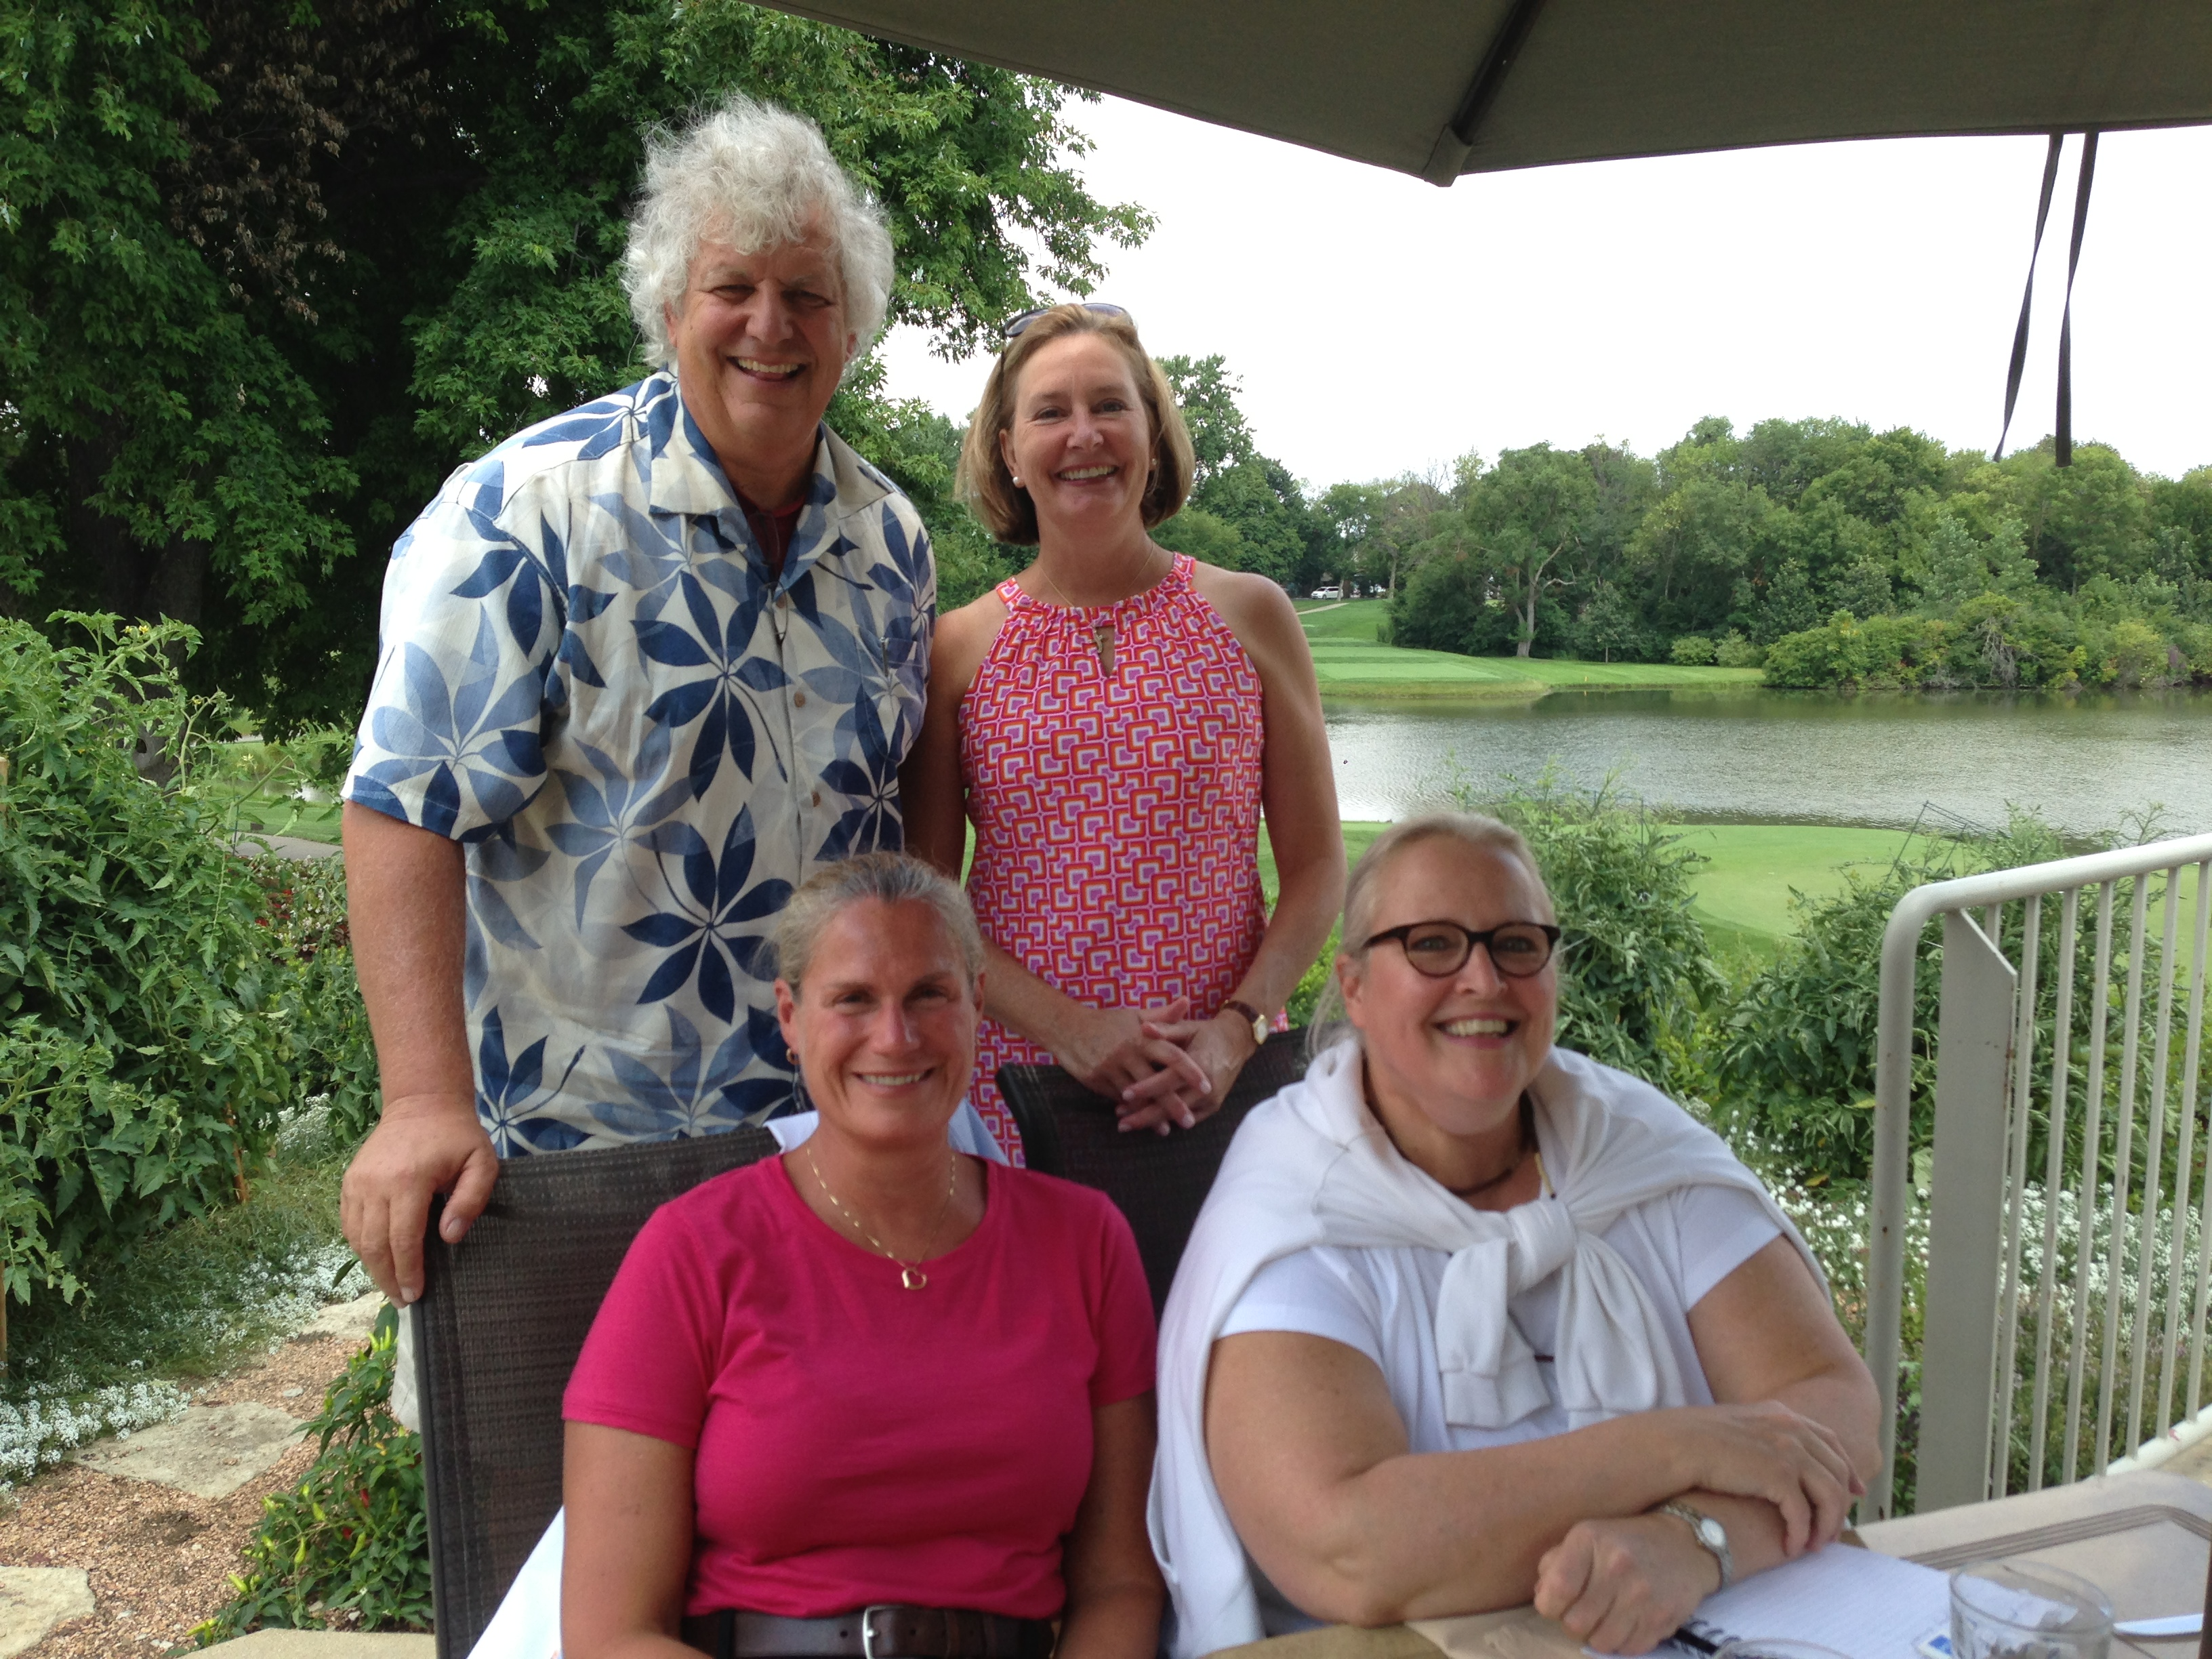 Dan W, Sue G, Bonnie S and Bonnie B meet up at Ruth Lake Country Club to hammer out reunion details and have lunch. Aug 10, 2013